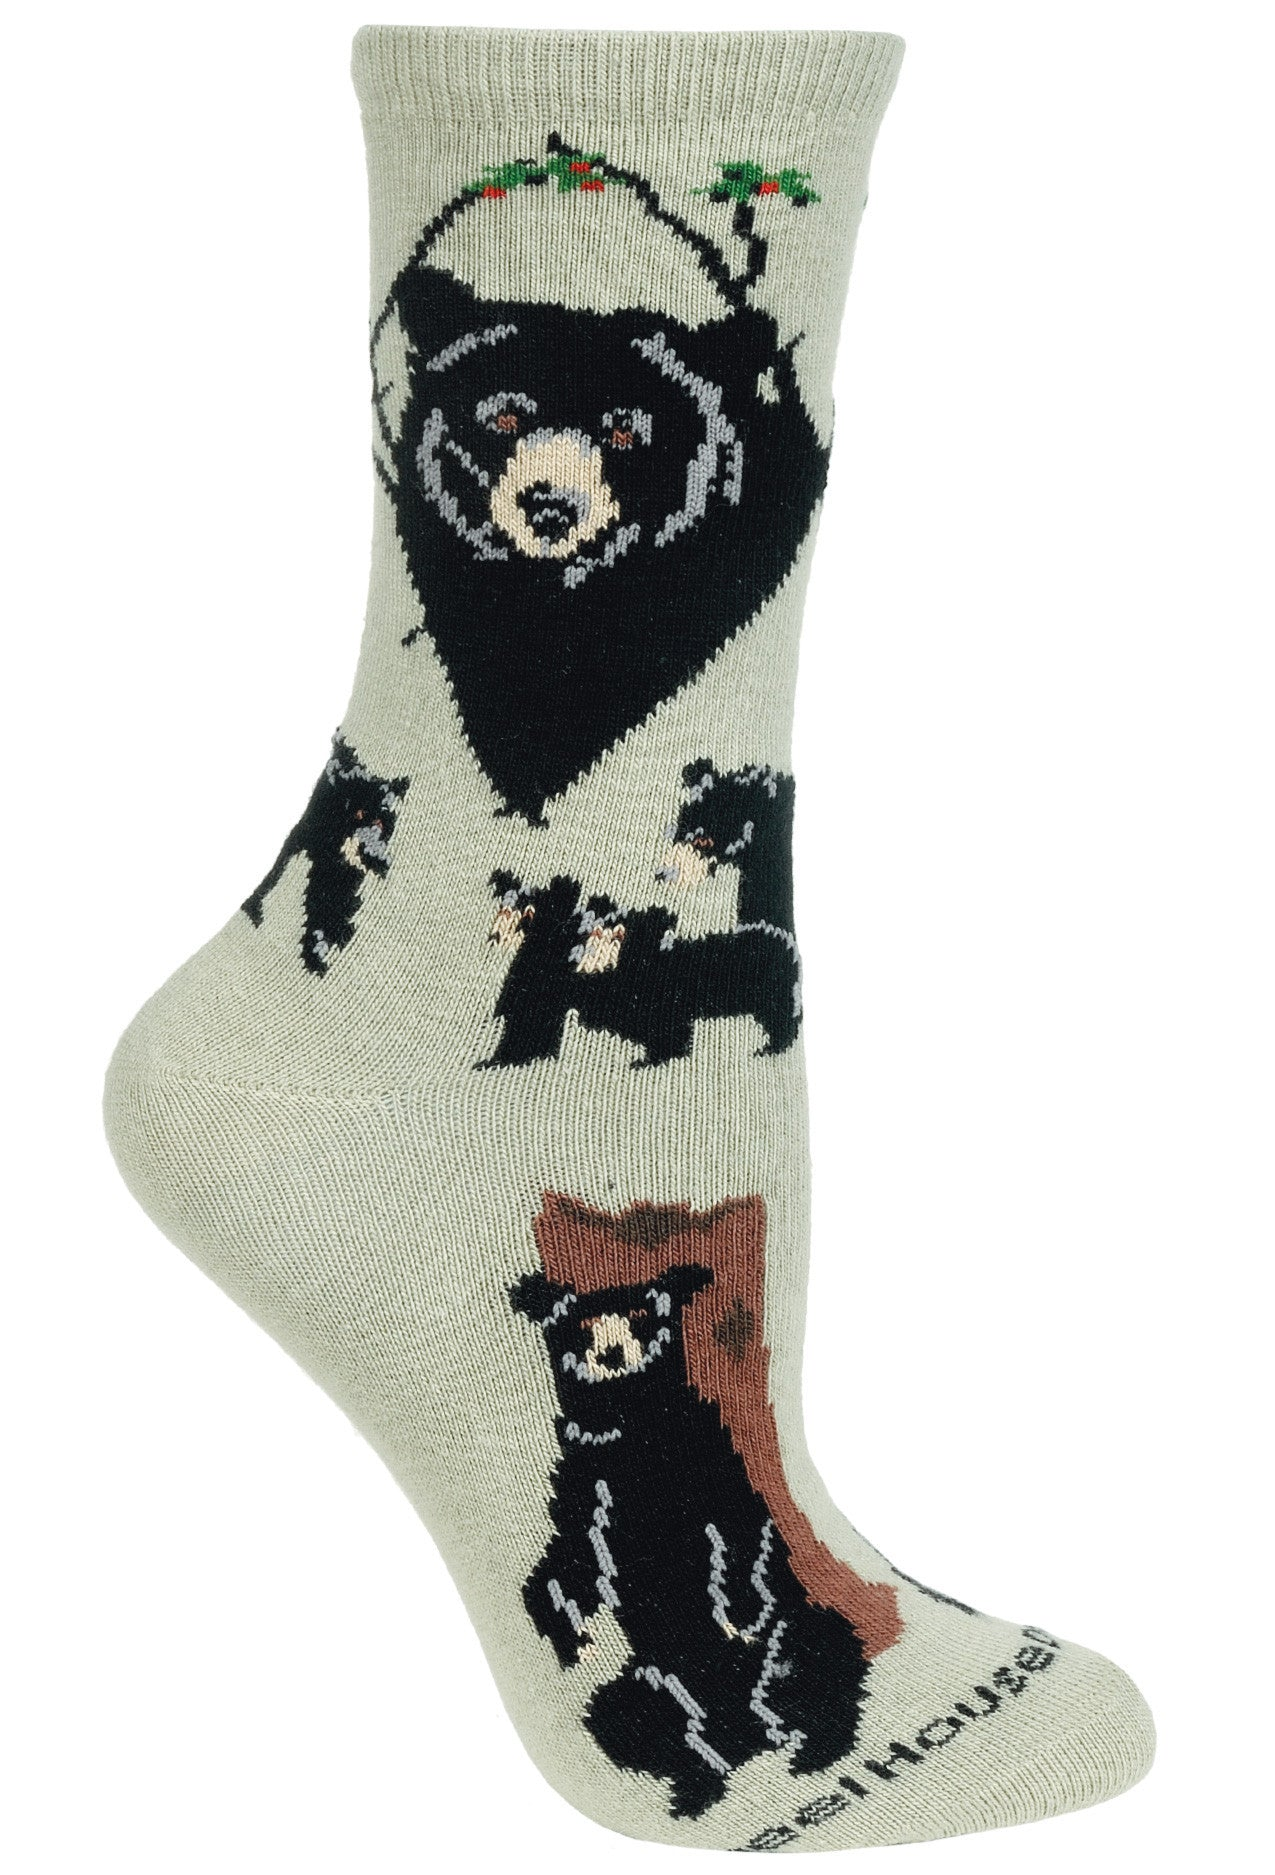 Bear, Black on Stone Socks